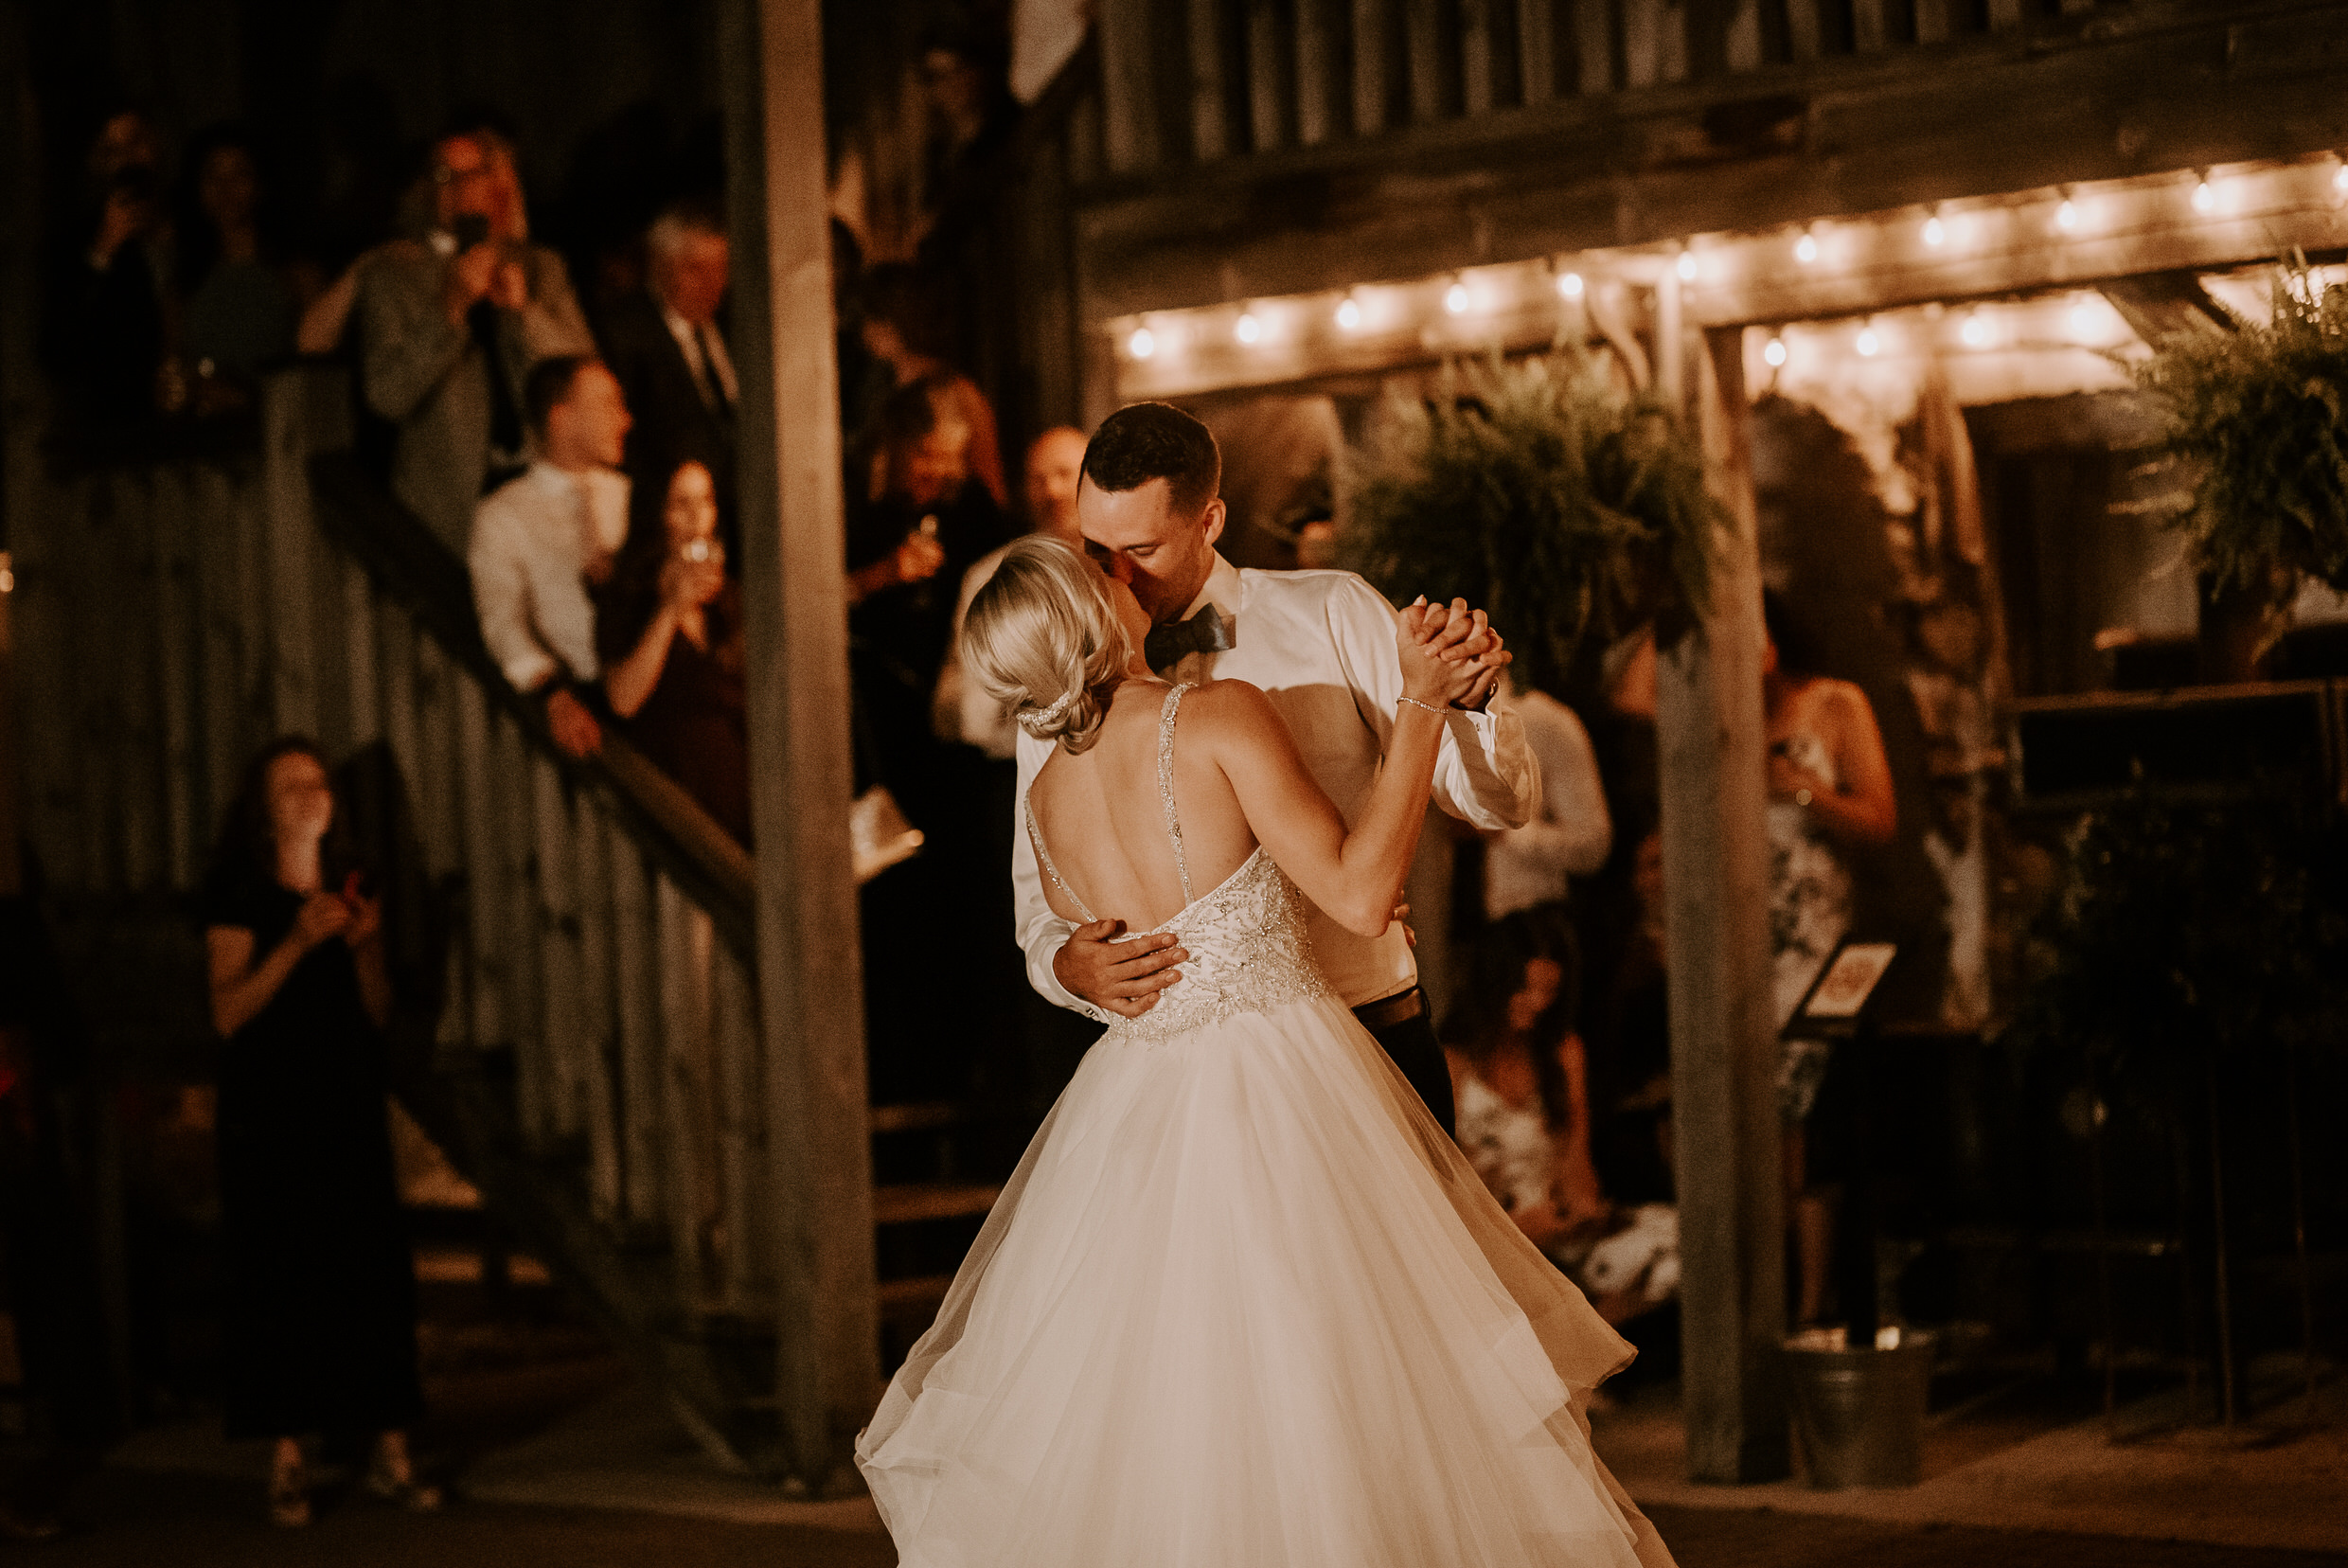 Belcroft Estates Wedding - bride and groom kiss and dance